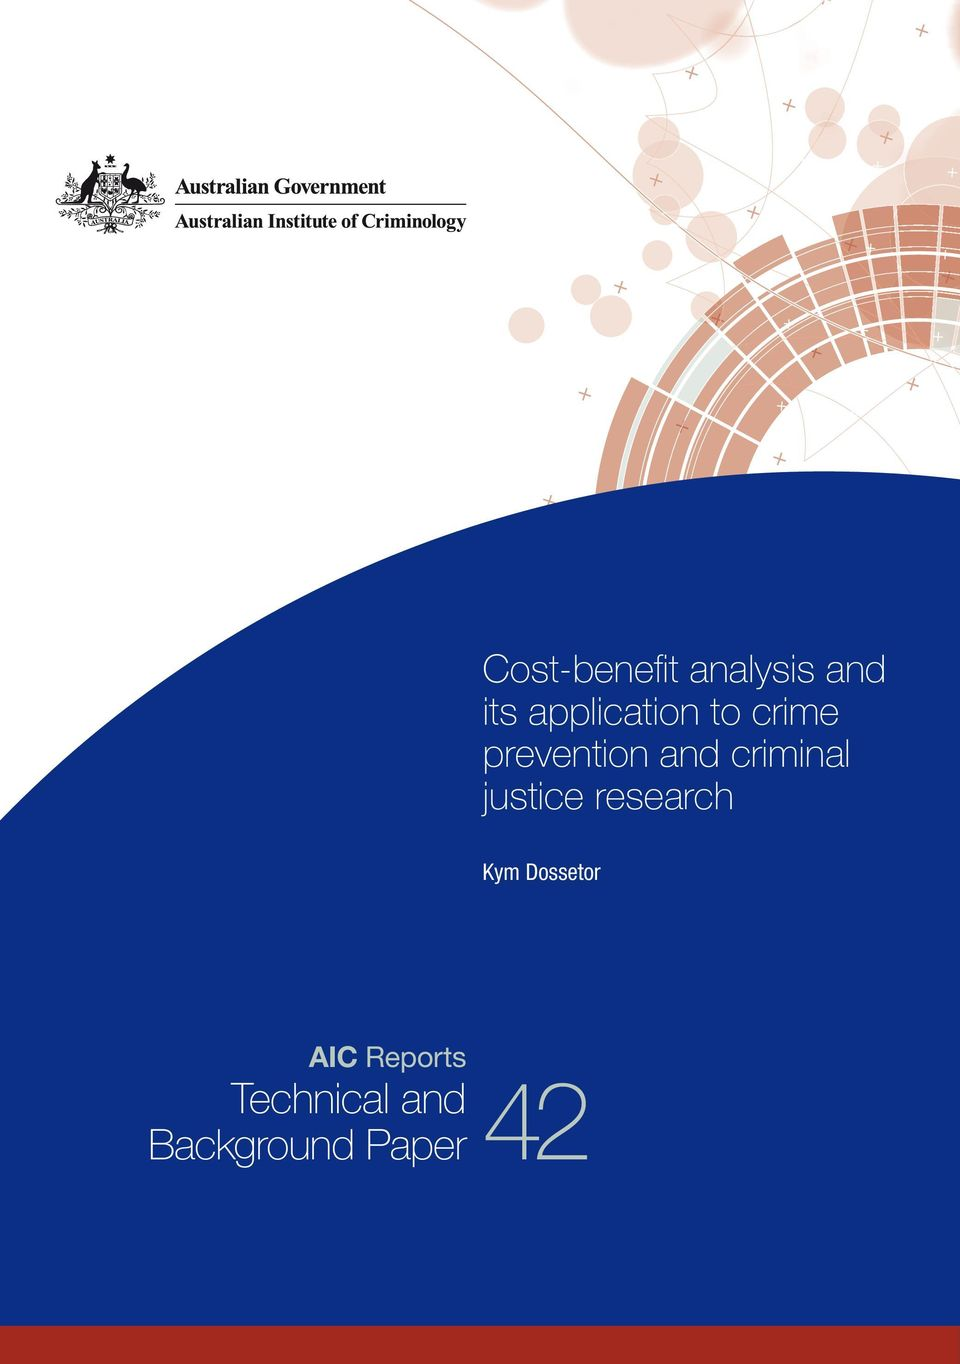 criminal justice research Kym